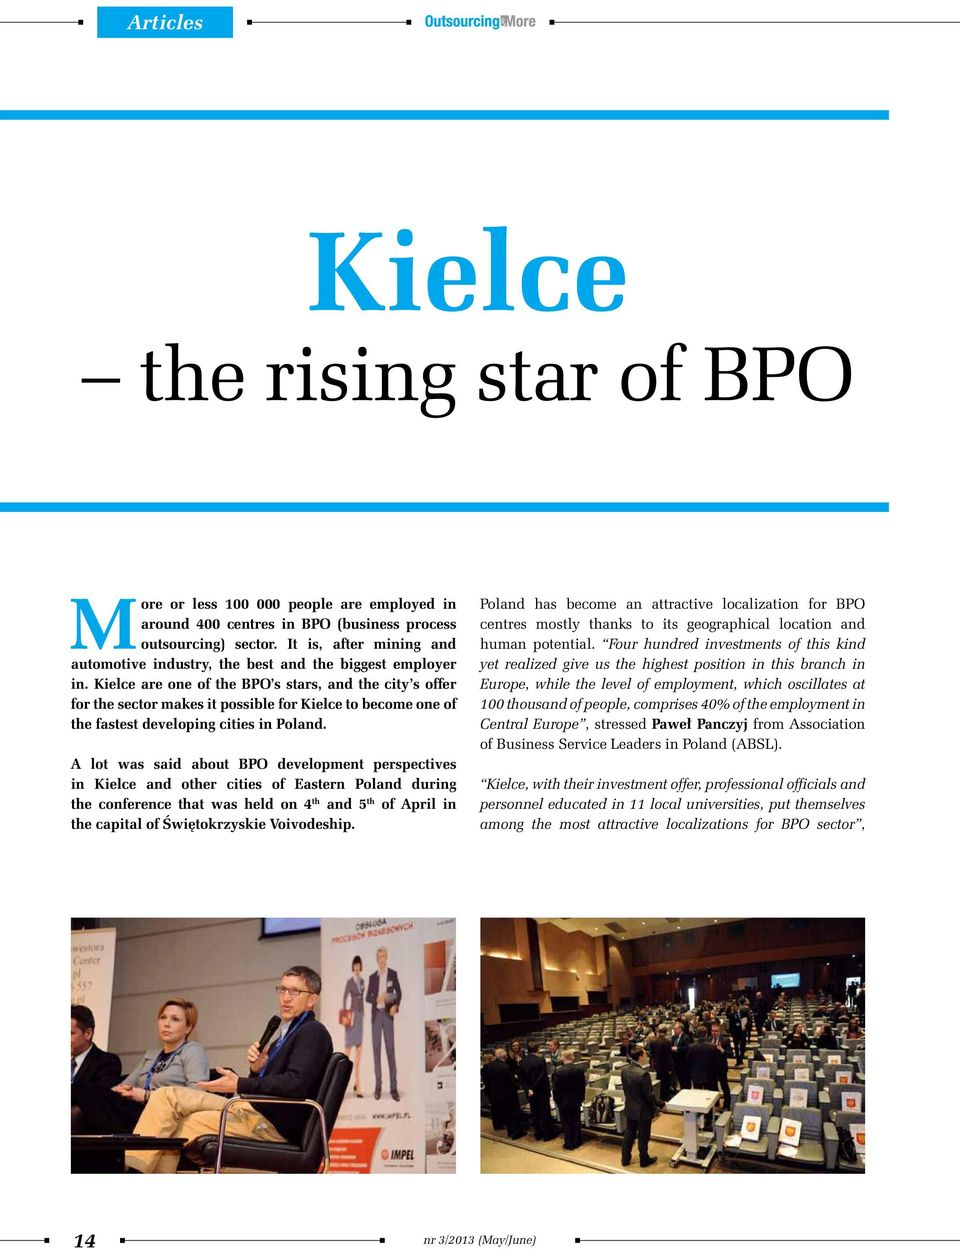 Kielce are one of the BPO s stars, and the city s offer for the sector makes it possible for Kielce to become one of the fastest developing cities in Poland.